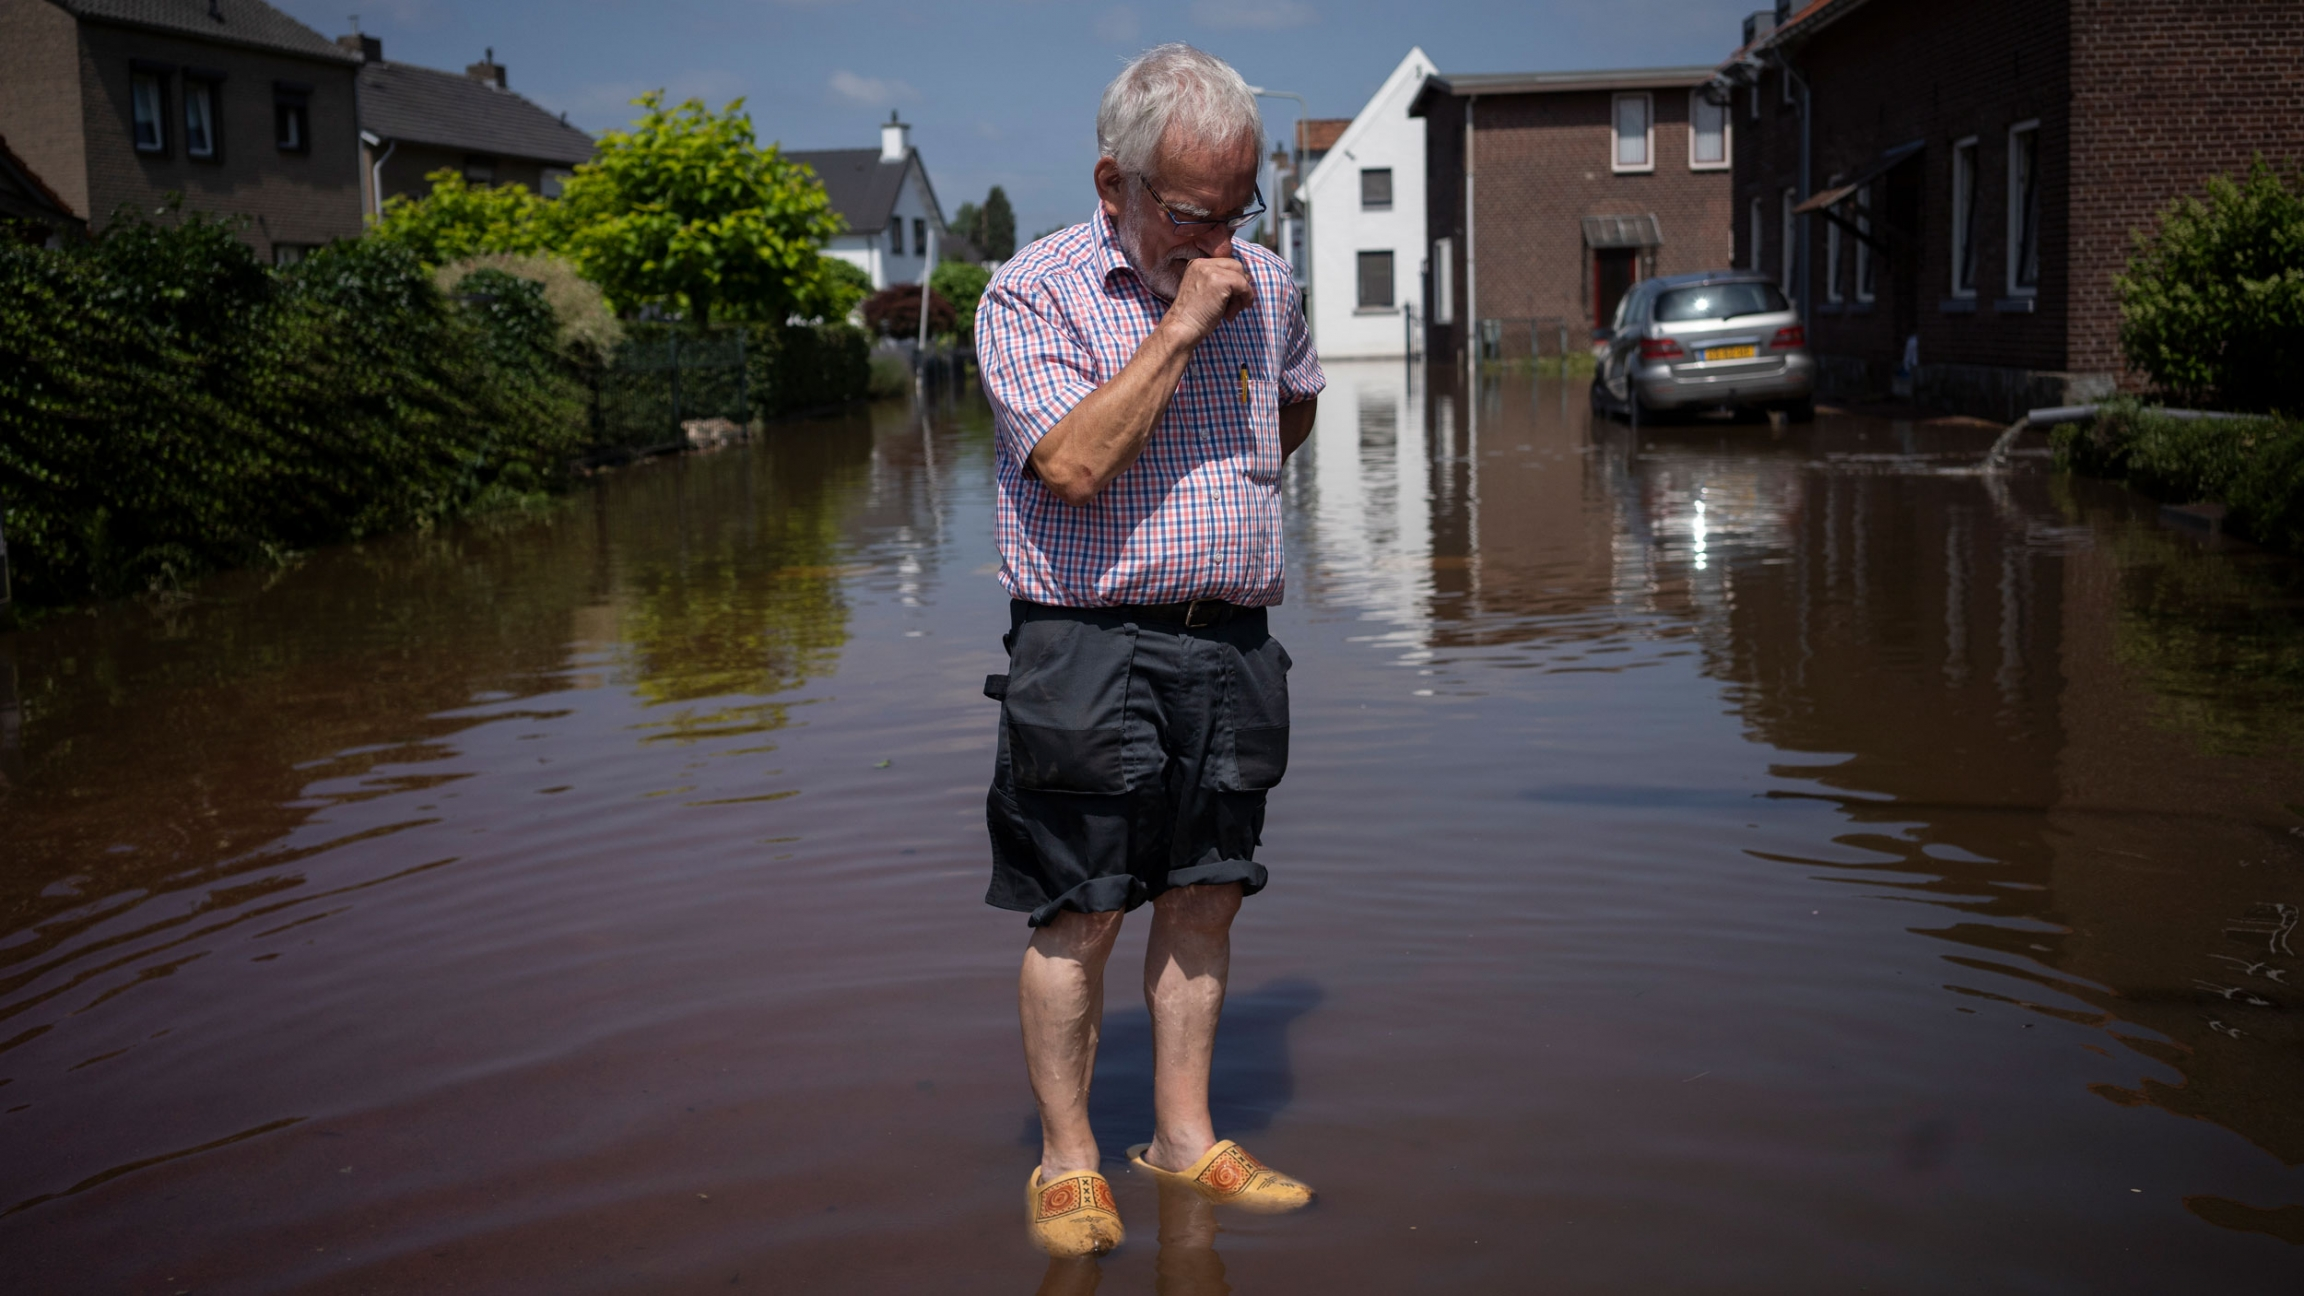 Wiel de Bie, 75, stands outside his flooded home in the town of Brommelen, Netherlands, July 17, 2021.